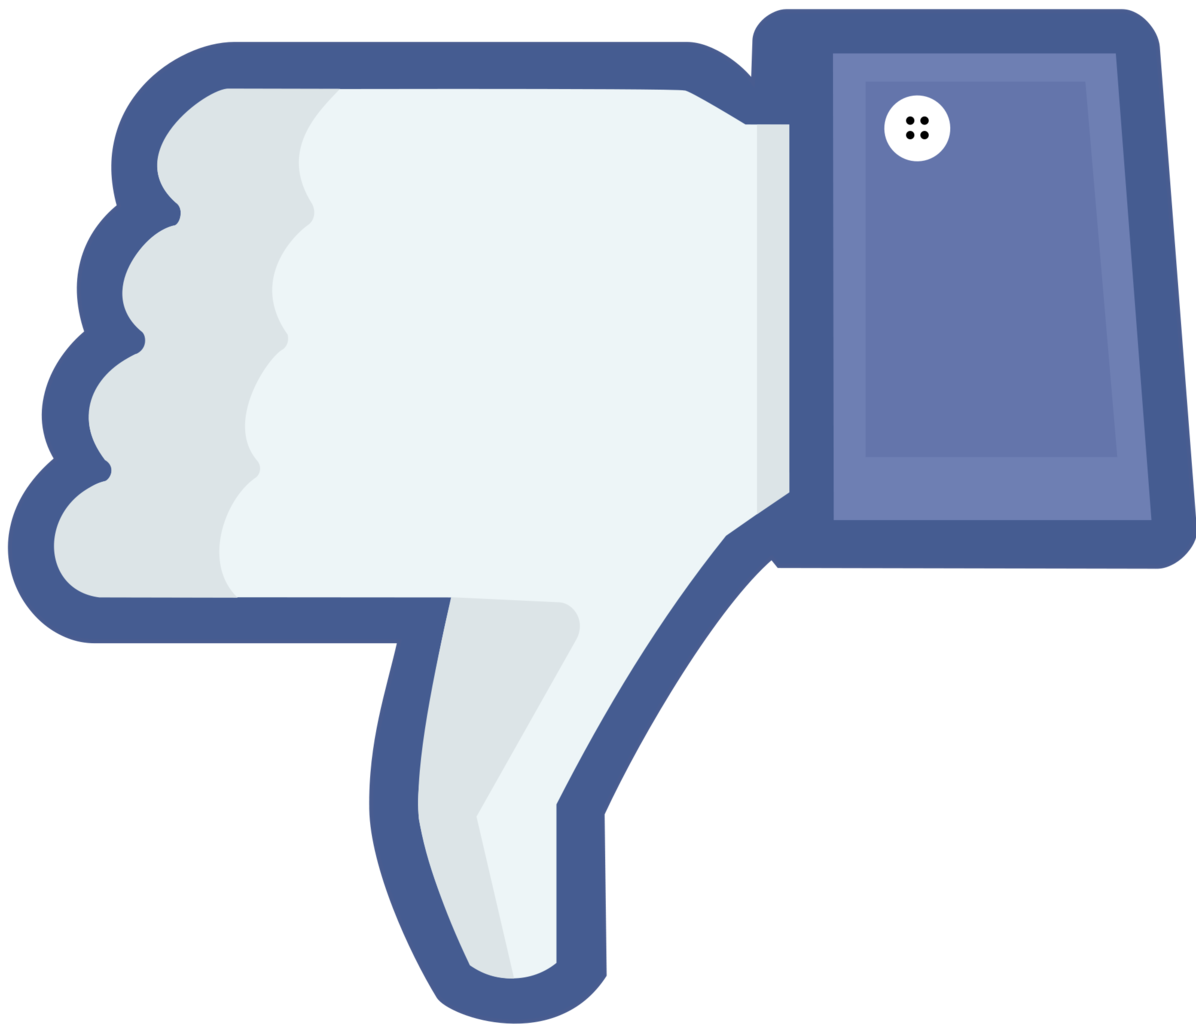 Tập tin:Not facebook not like thumbs down.png – Wikipedia tiếng Việt